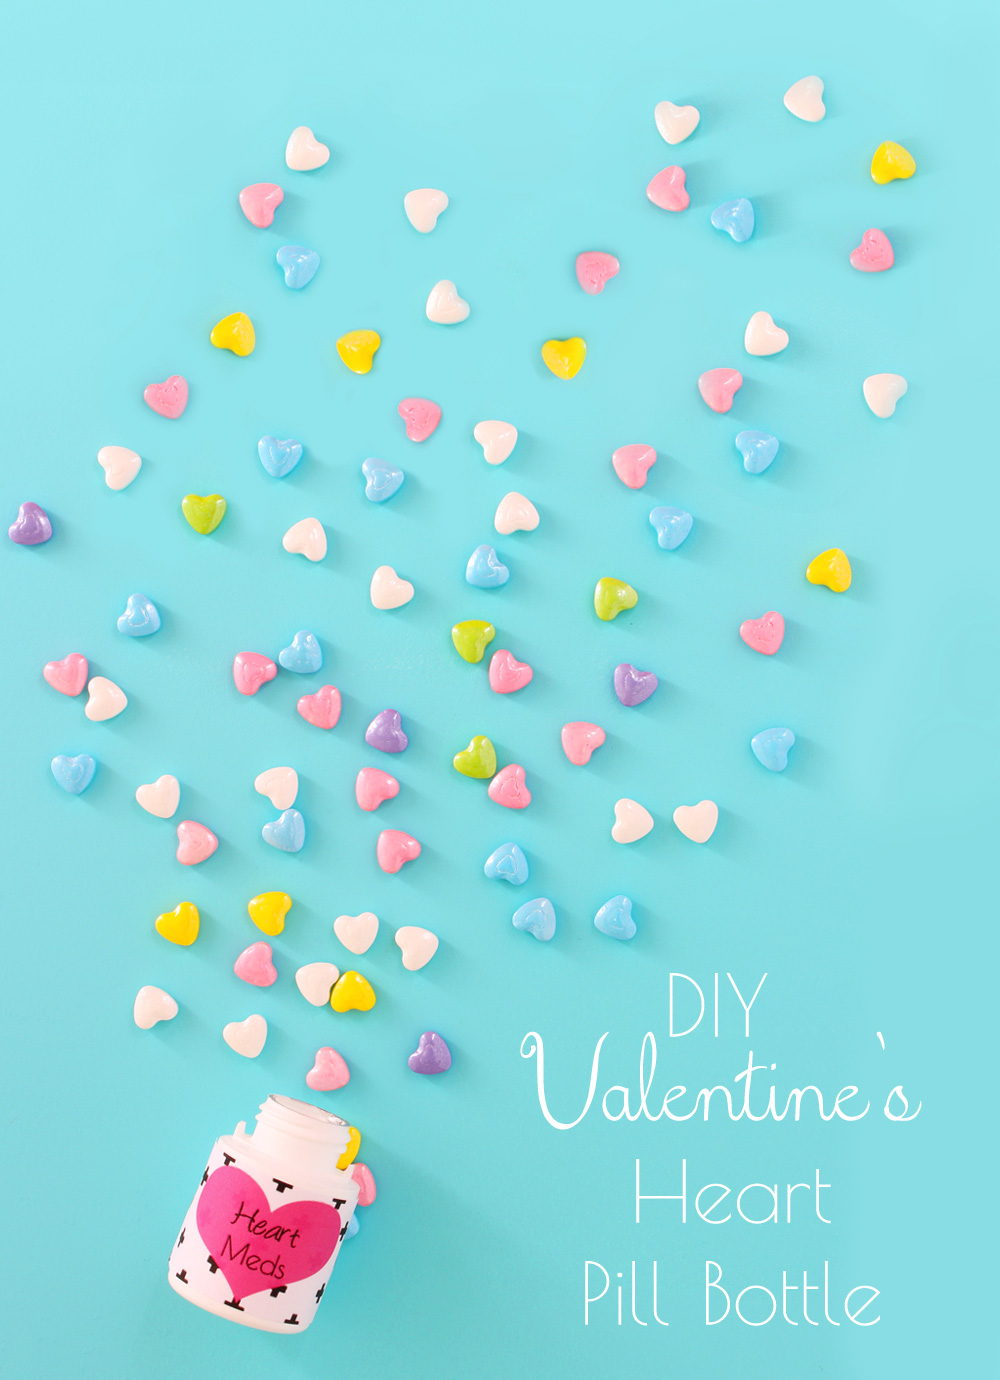 Free Printable! A dose of Valentine's Day for you friends or galpals!